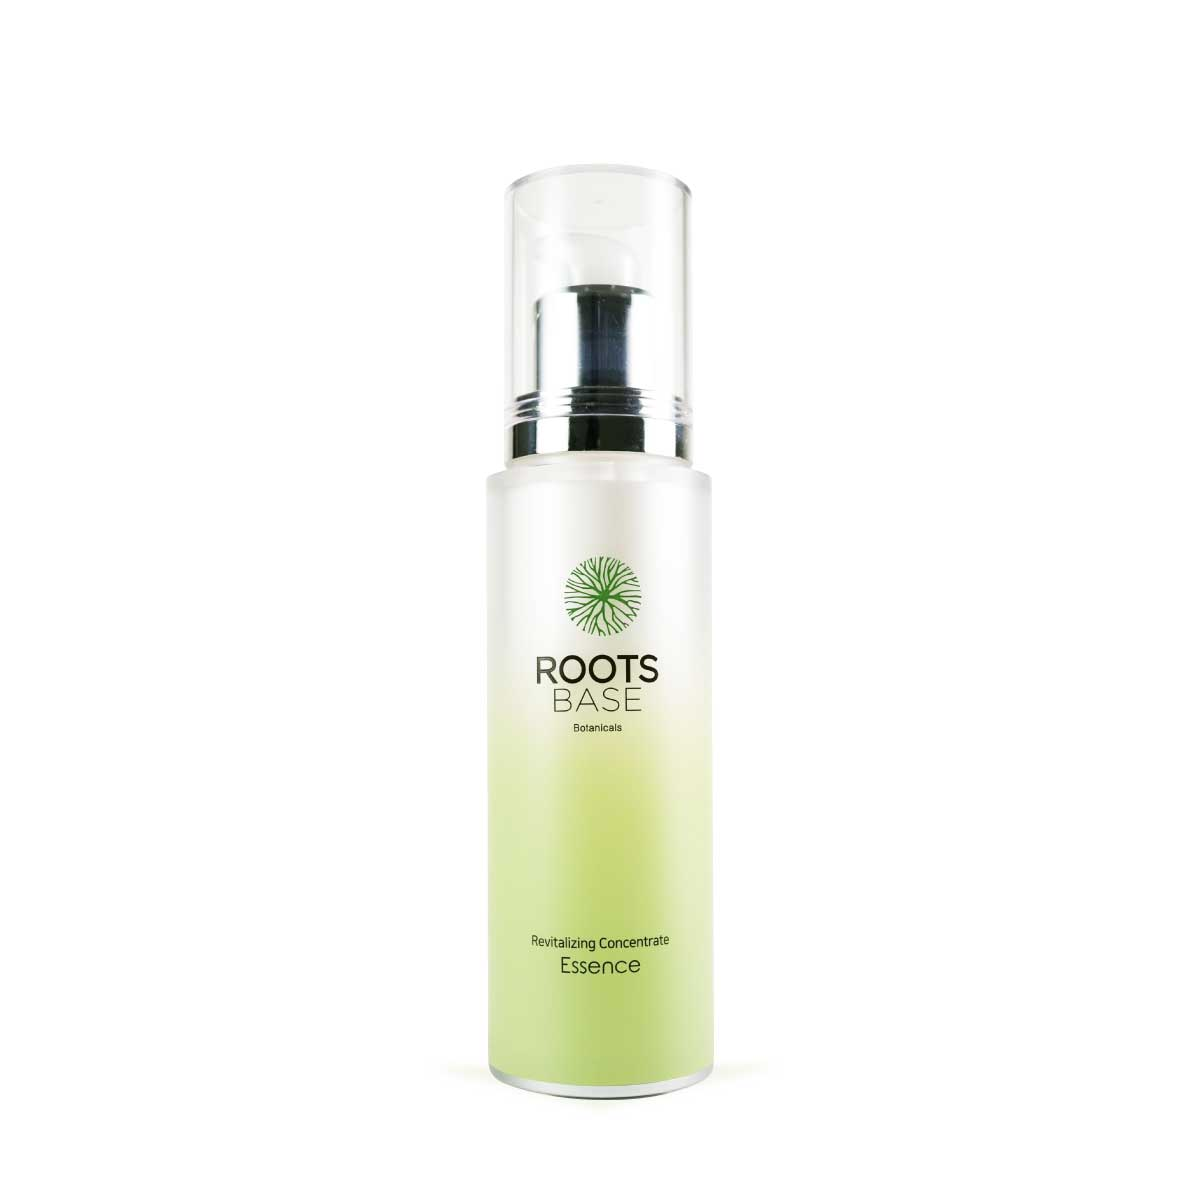 ROOTS BASE Revitalizing Concentrate Essence 50ml